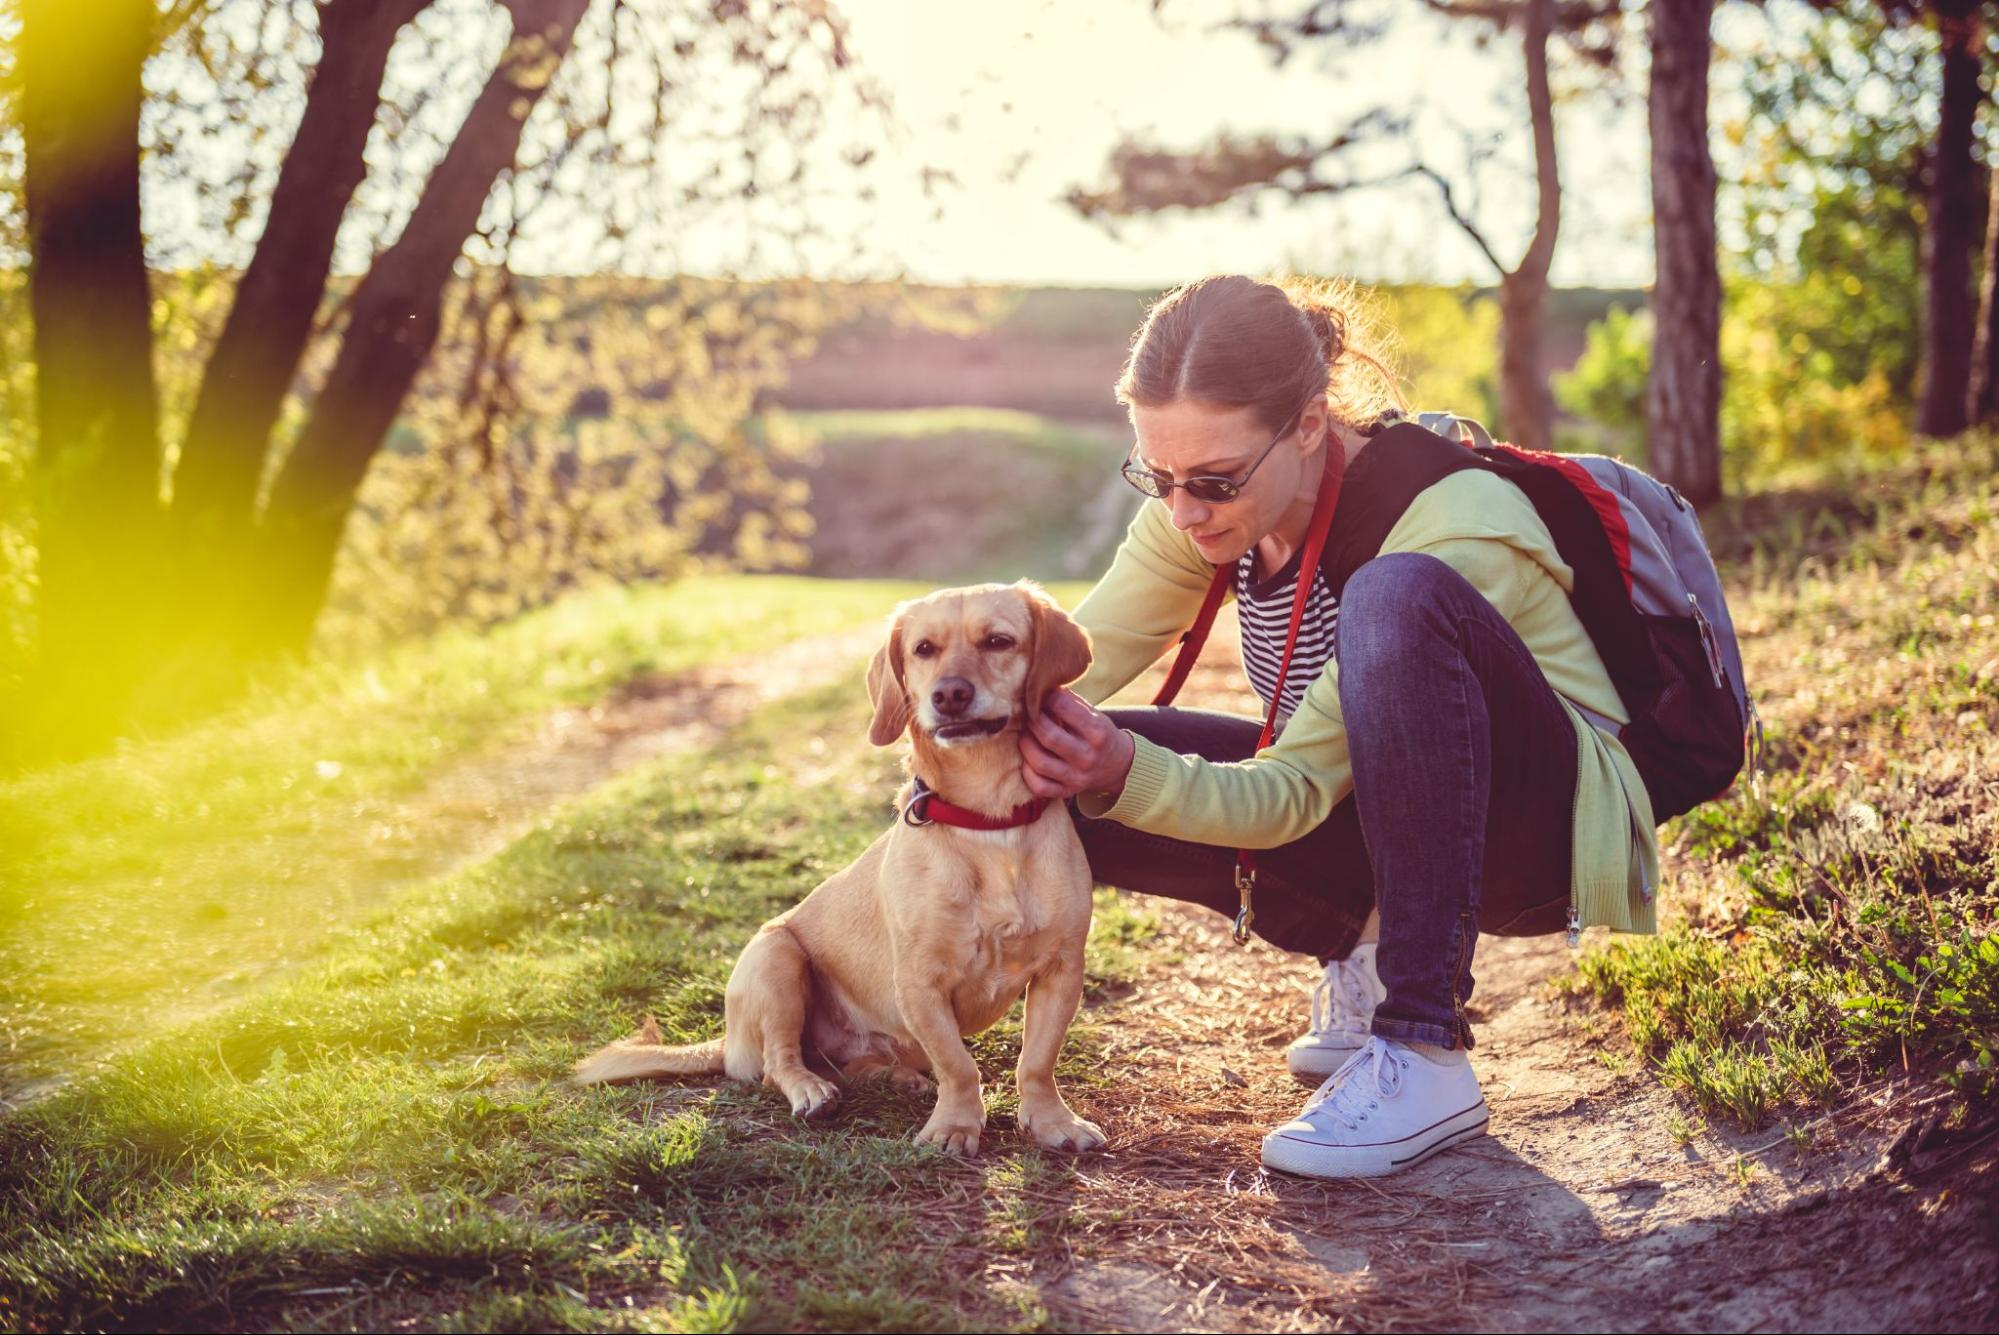 The best way to remove a tick on a dog is to first make the tick loosen its bite and then to use curved tweezers to gently pull...